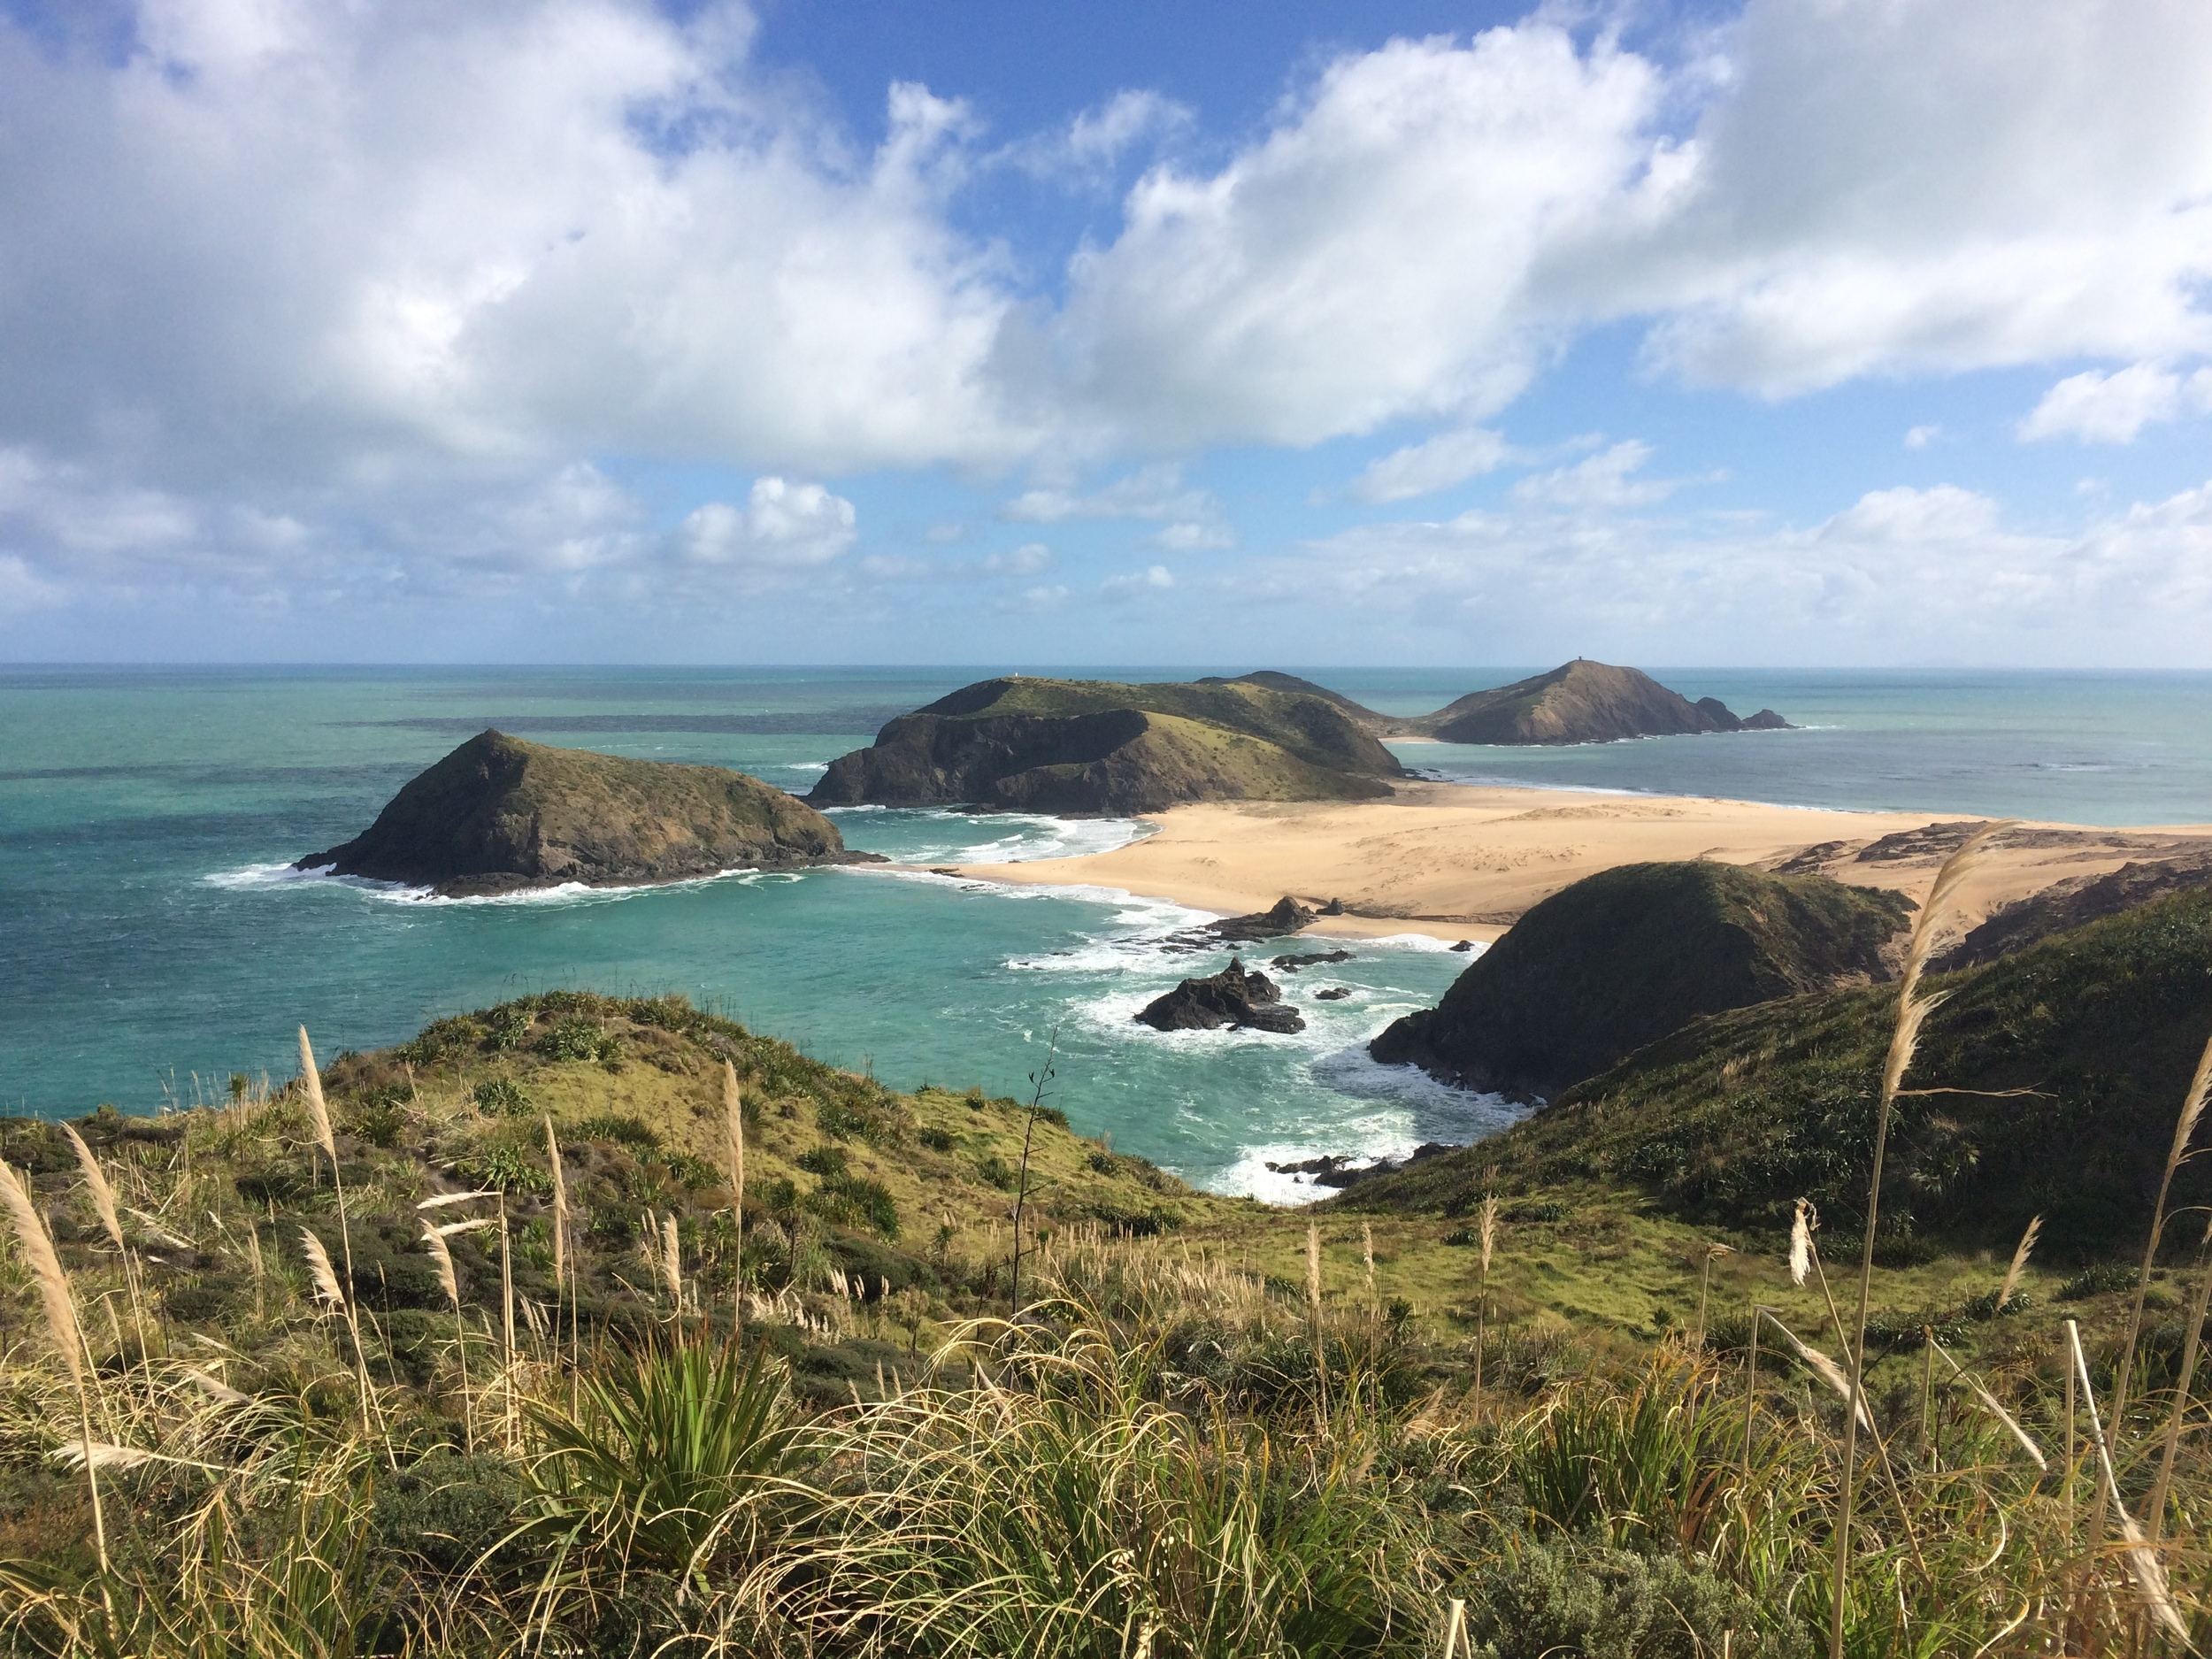 Hiking from Cape Reinga to 90-Mile Beach